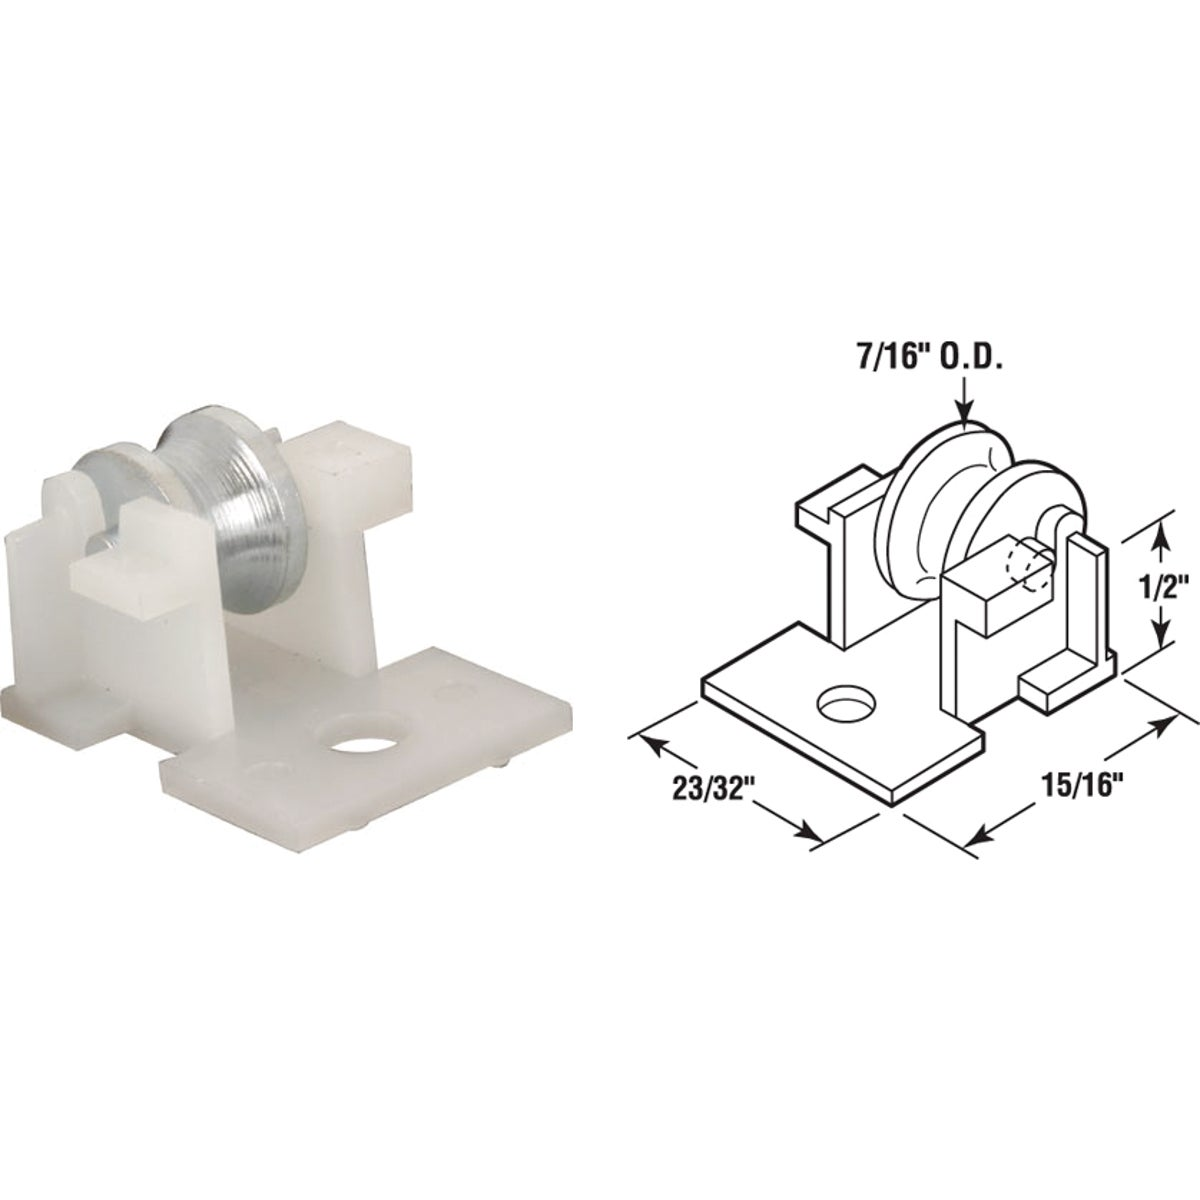 WINDOW ROLLER ASSEMBLY - 171699 by Prime Line Products